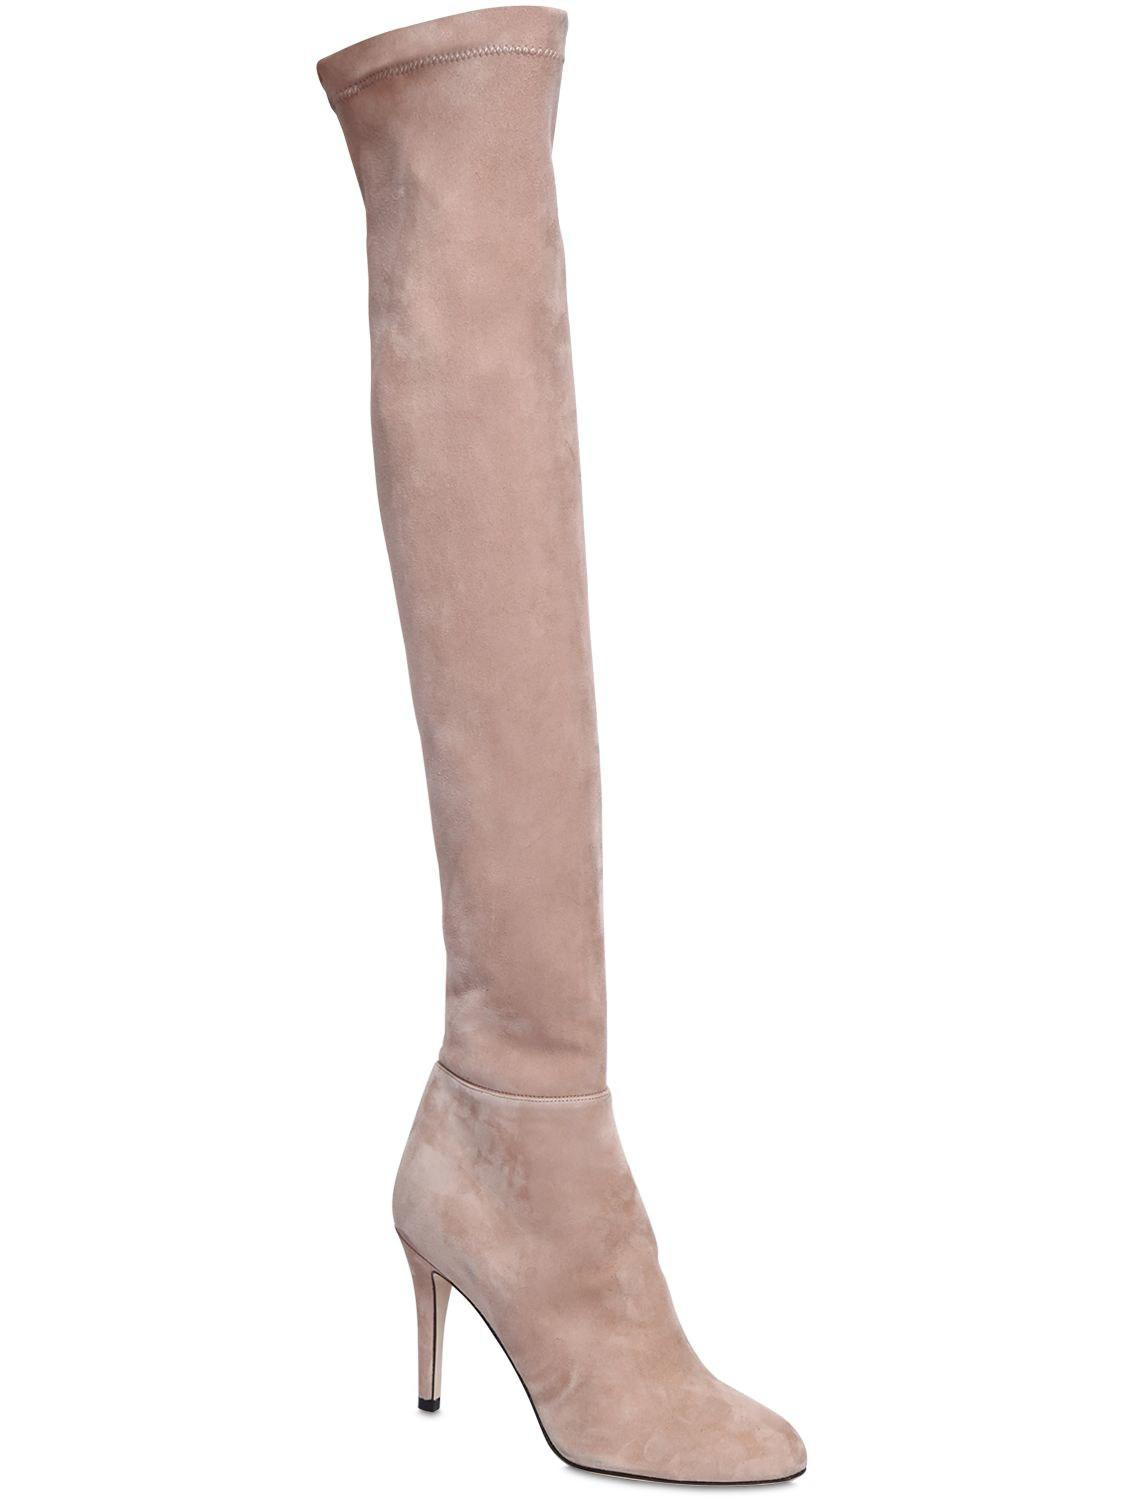 2f9927b438c Lyst - Jimmy Choo 90mm Toni Suede Over The Knee Boots in Natural